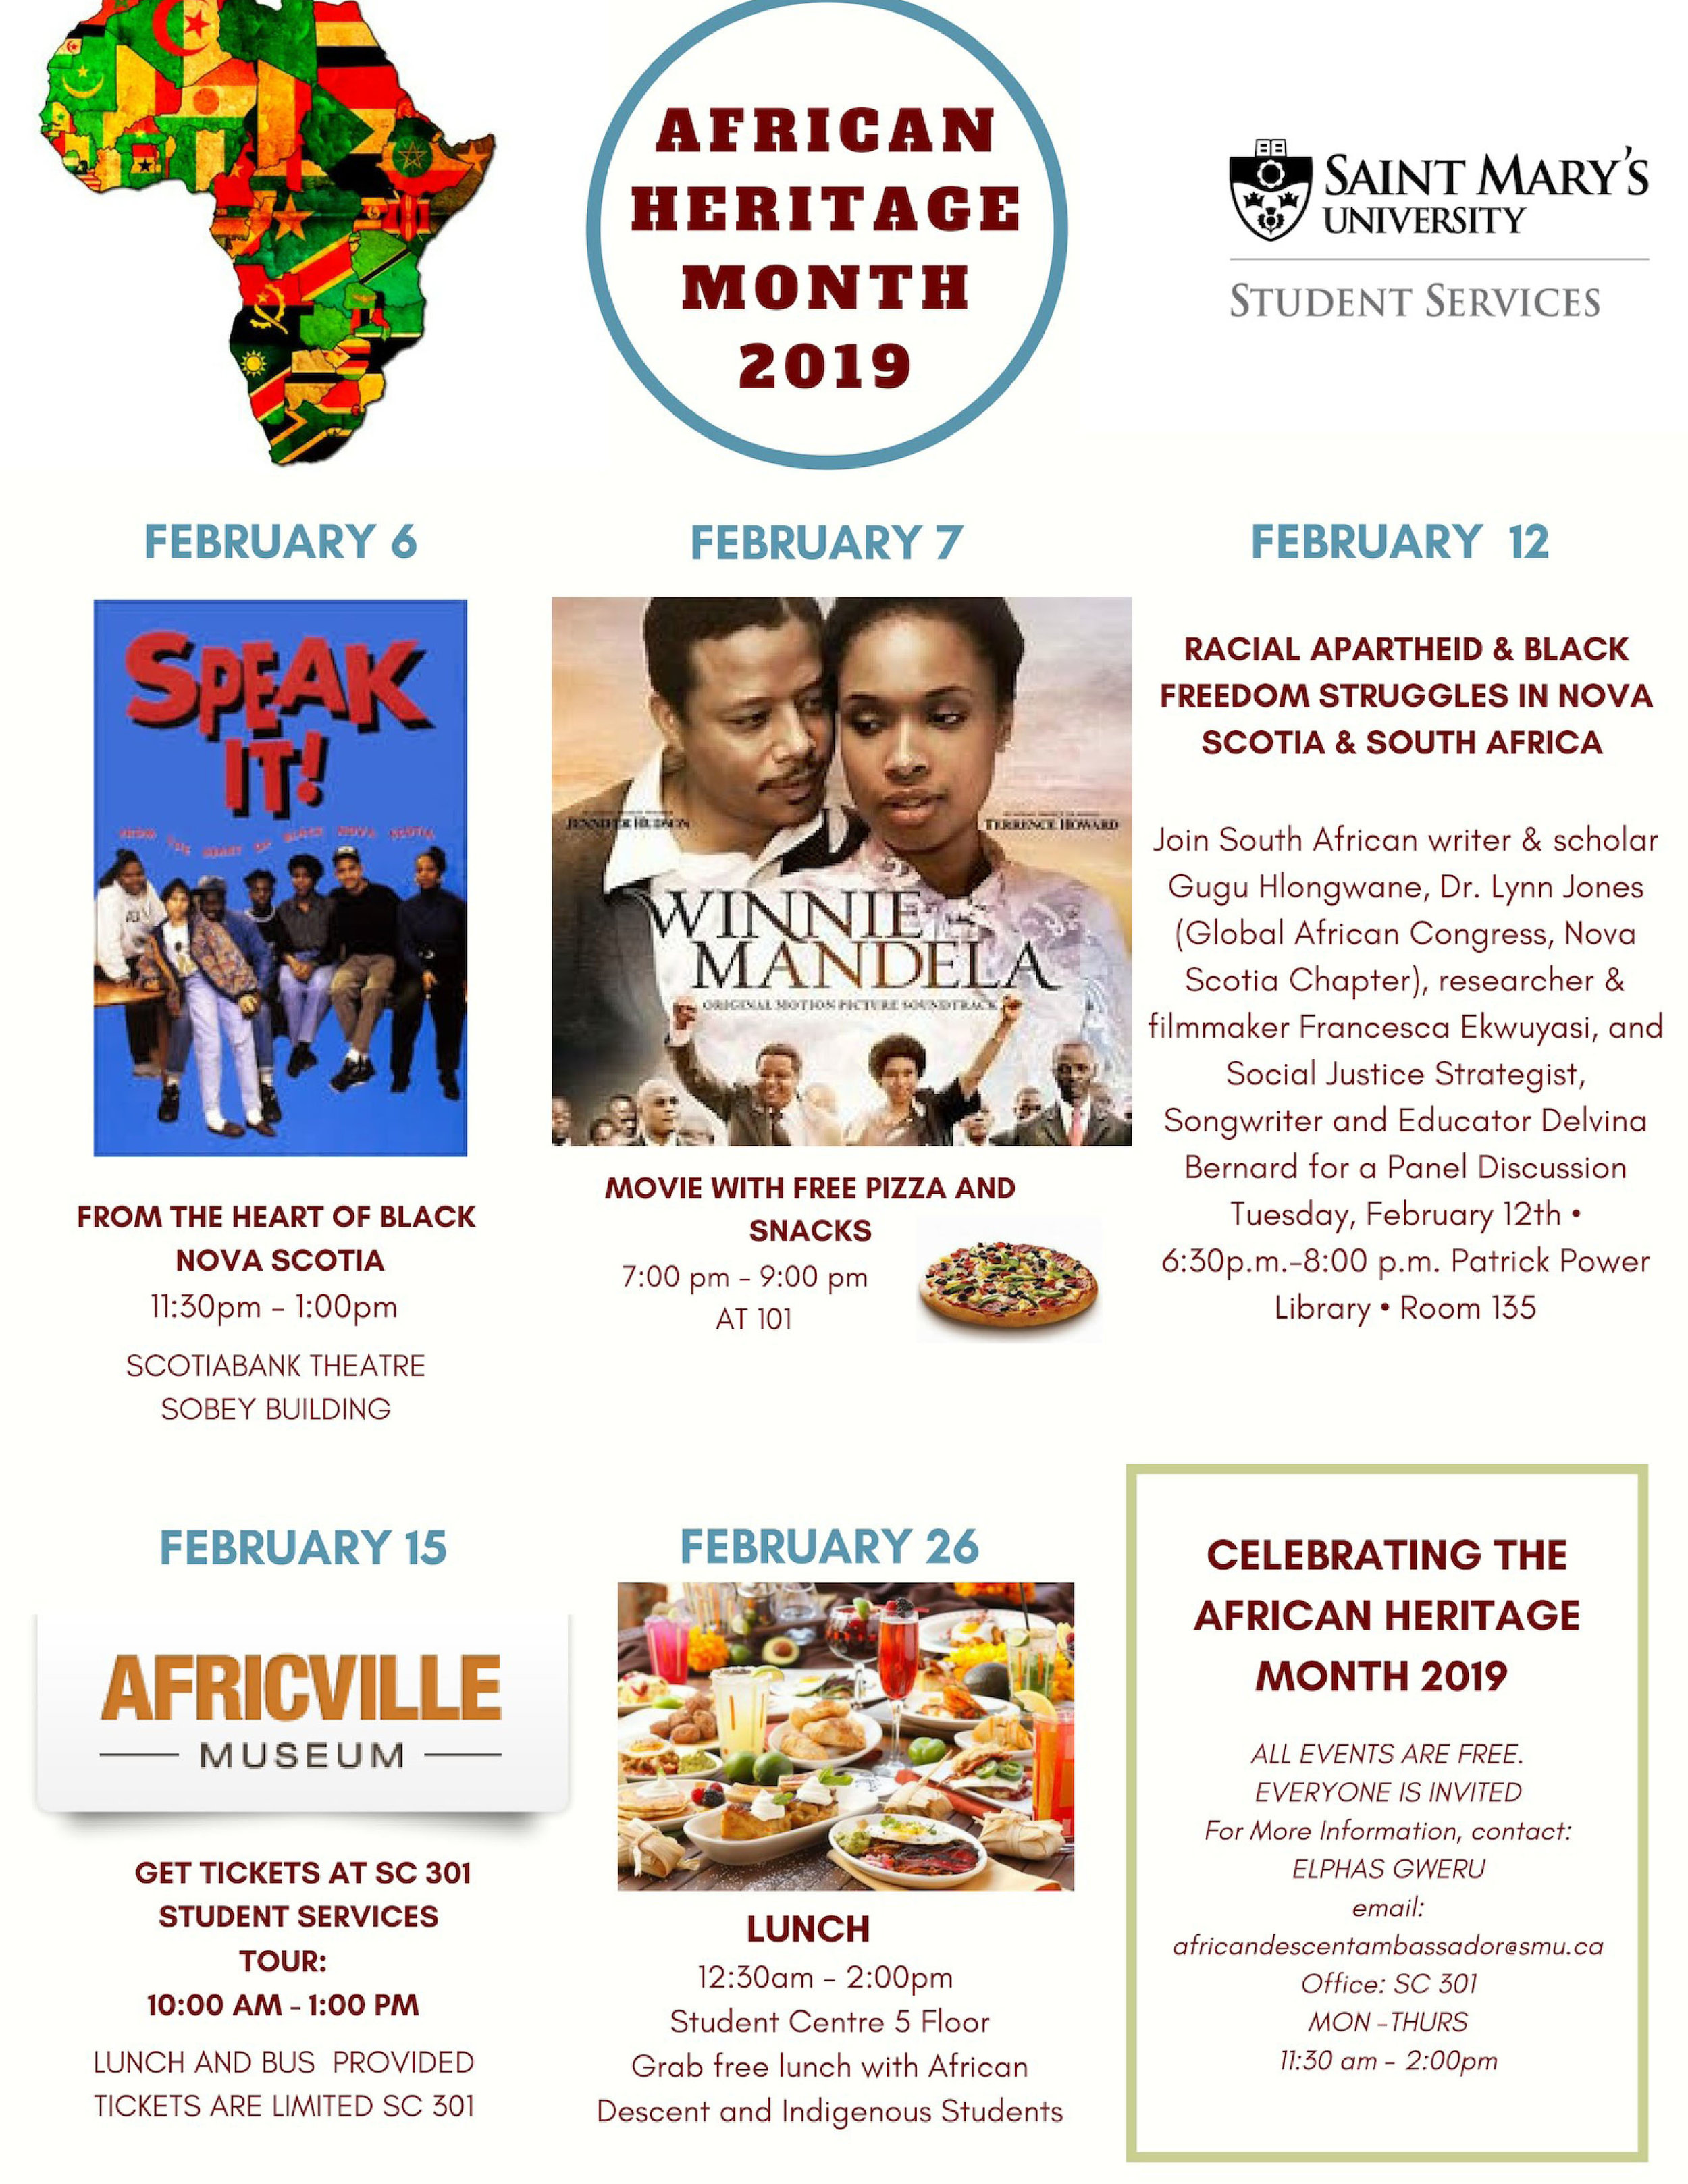 African Heritage Month events at Saint Mary's.  Click here to go to the Saint Mary's events calendar.